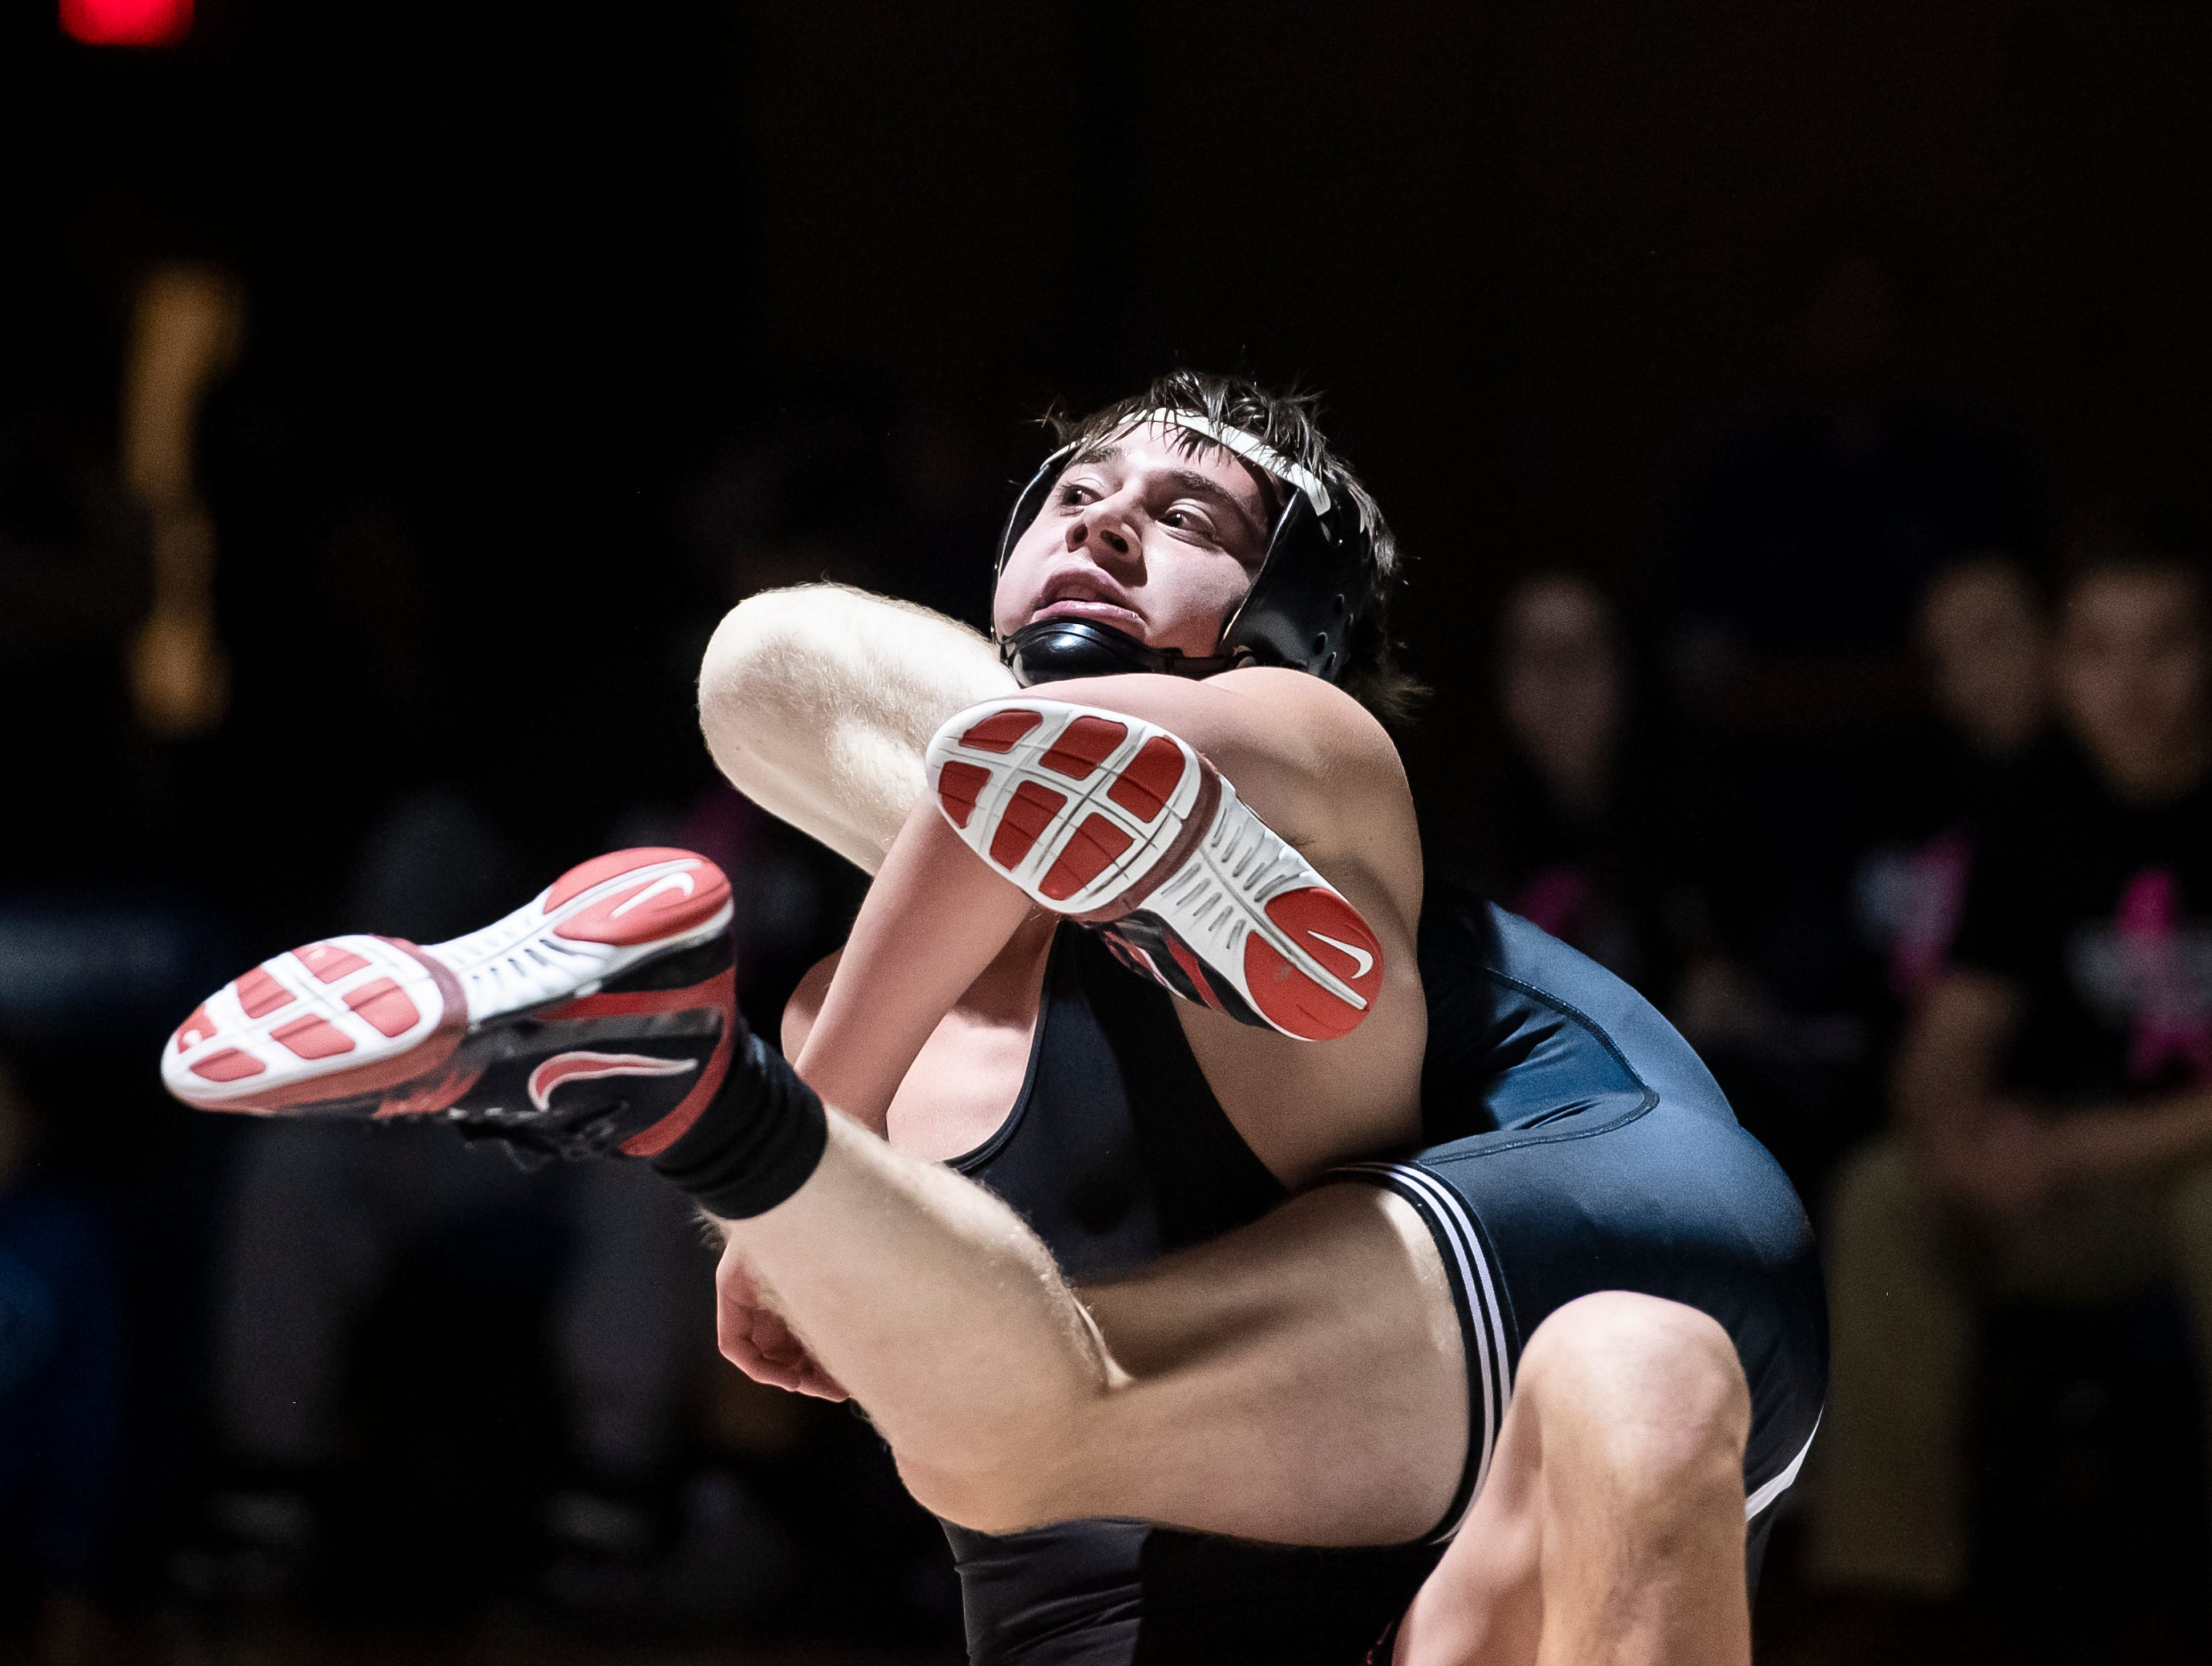 Spring Grove's Alec Villareal, top, wrestles South Western's Kasey Doll during the 126-pound bout. Doll won the match, 14-6, Tuesday, Jan. 15, 2019. Spring Grove beat the Mustangs 36-25 during the Rockets' annual 'Take Down Cancer' match, which raised $44,250 for the Heather L. Baker Foundation.